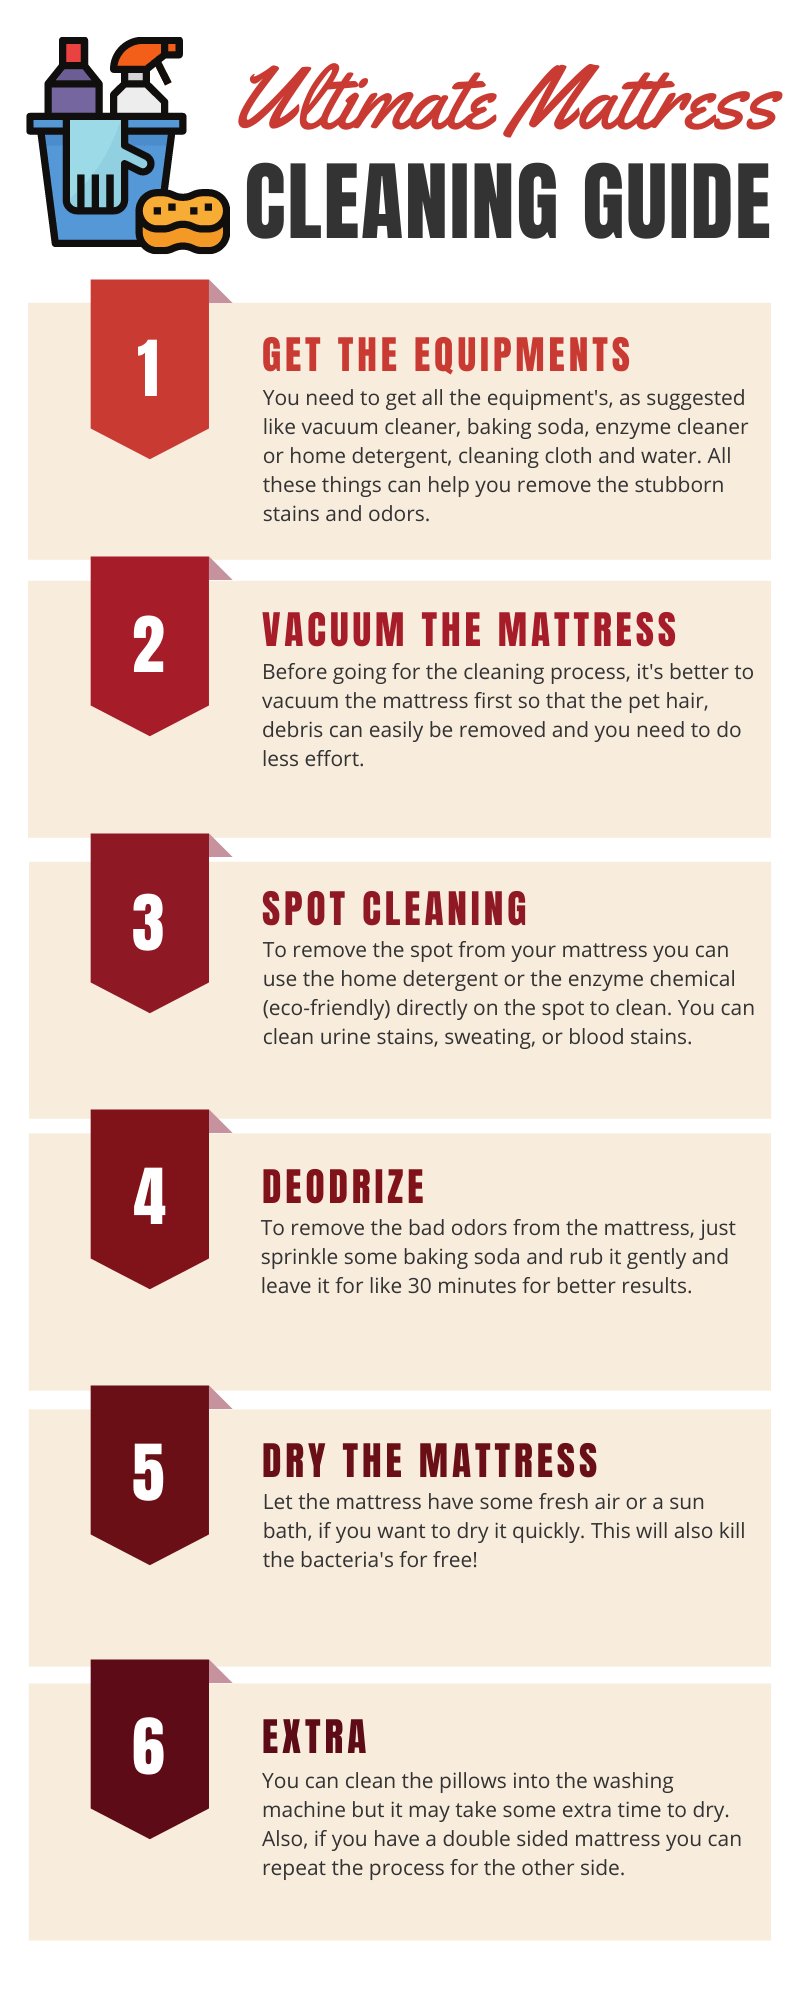 How to Clean a Mattress Complete Guide